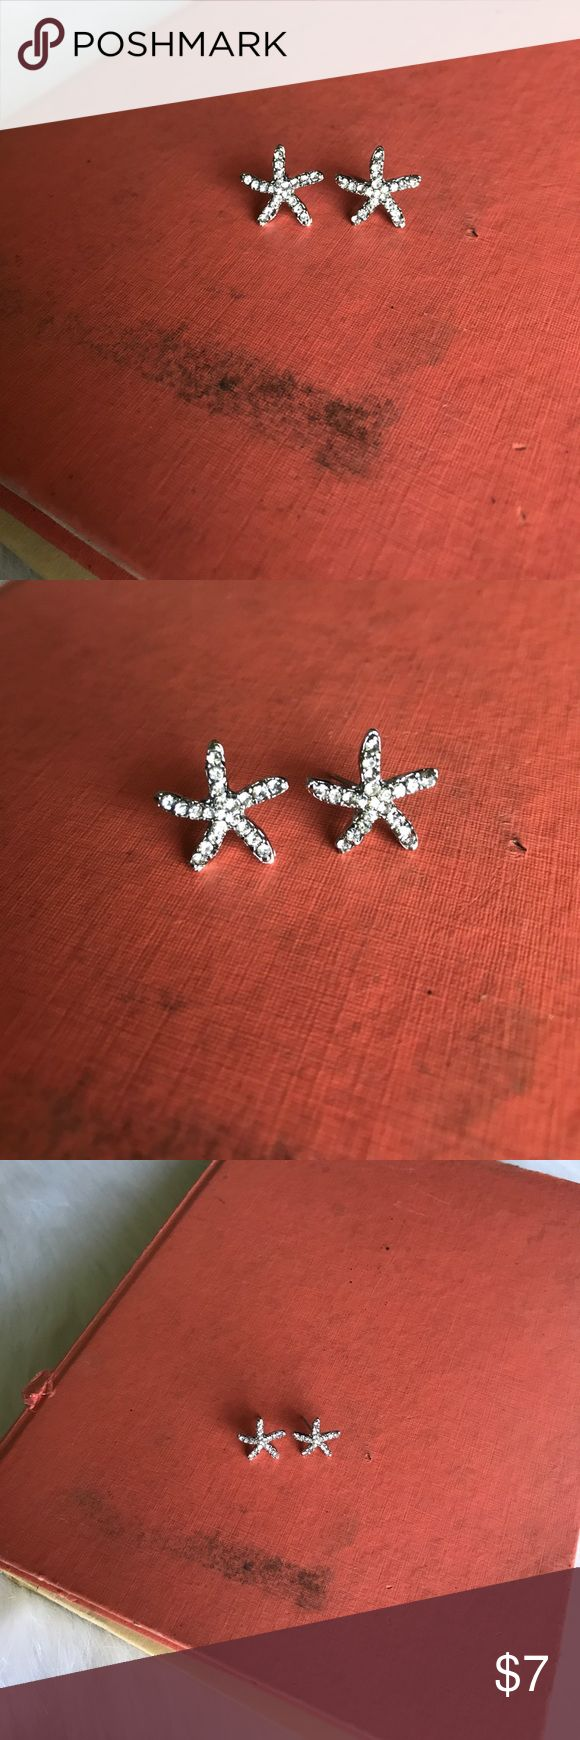 Silver Starfish Earrings🐚 Boutique